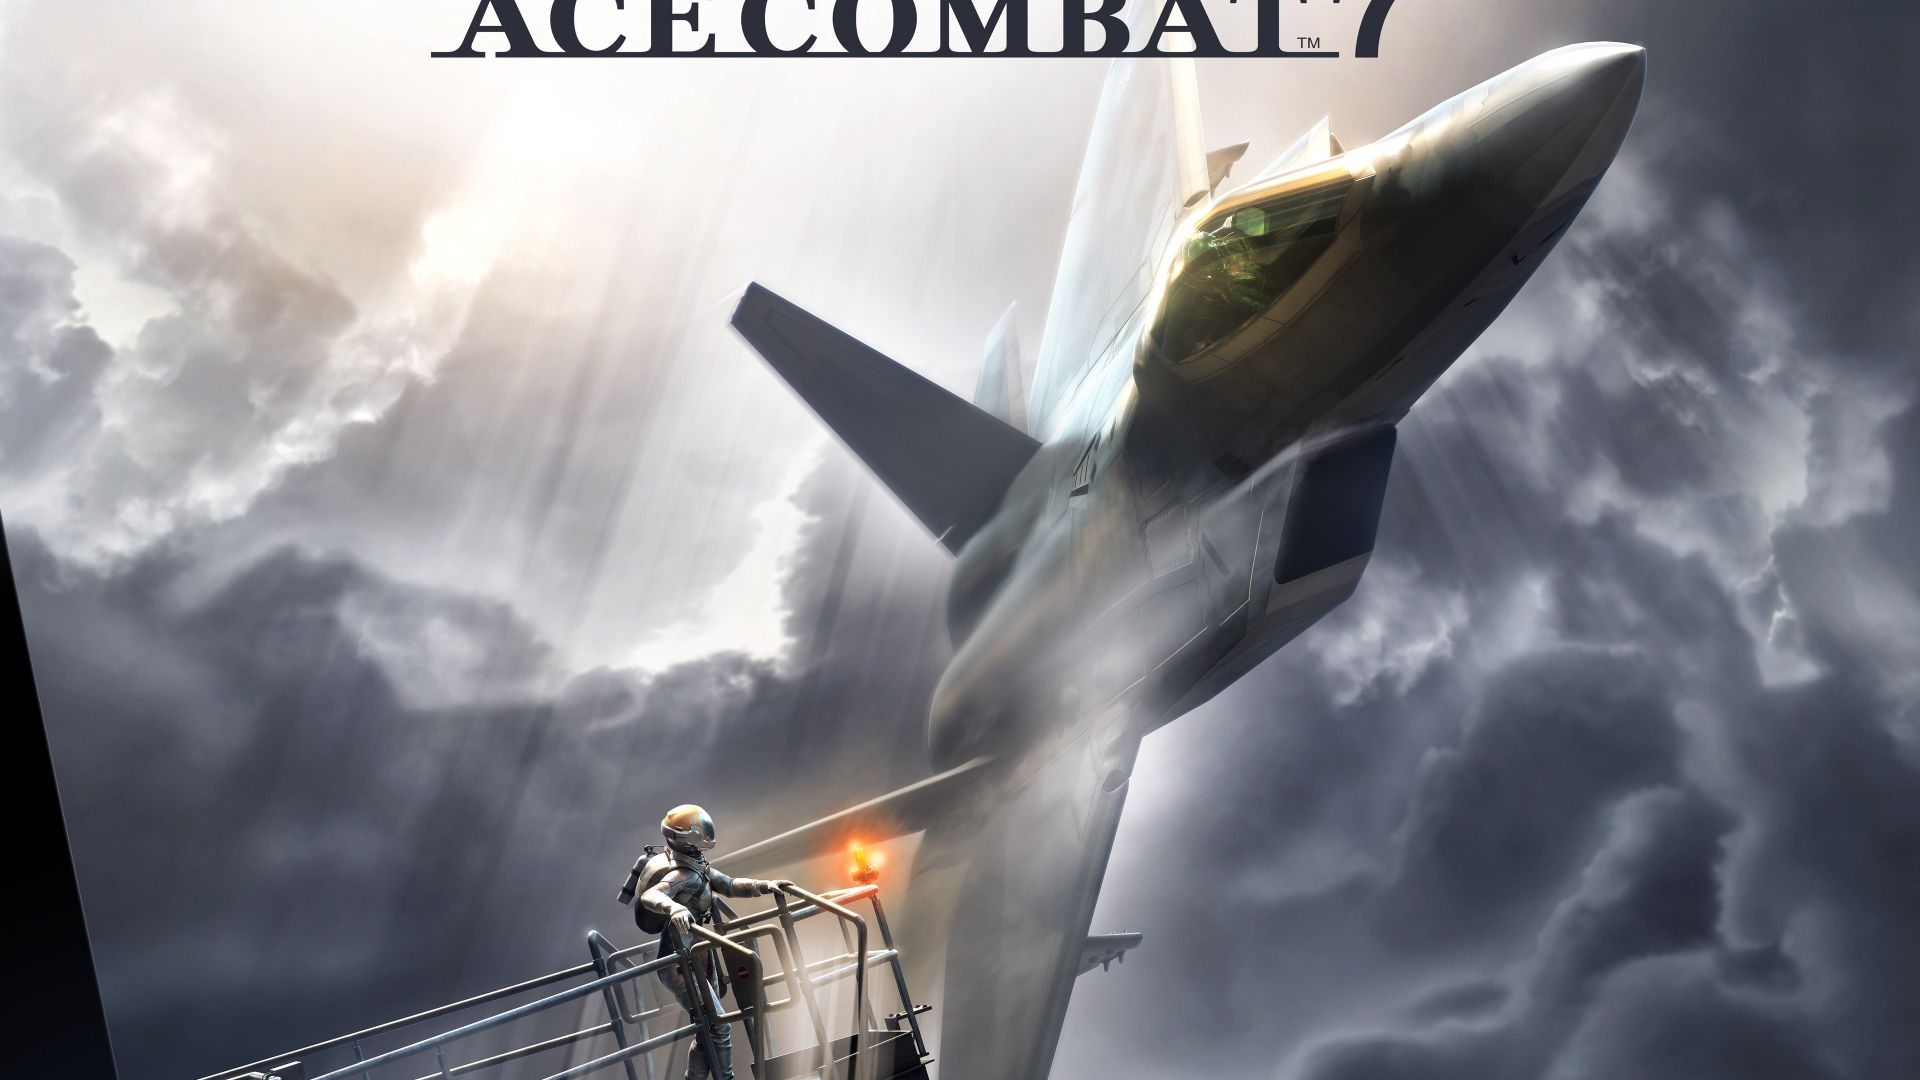 Ace Combat 7: Skies Unknow, fighter plane, aircraft, 5k